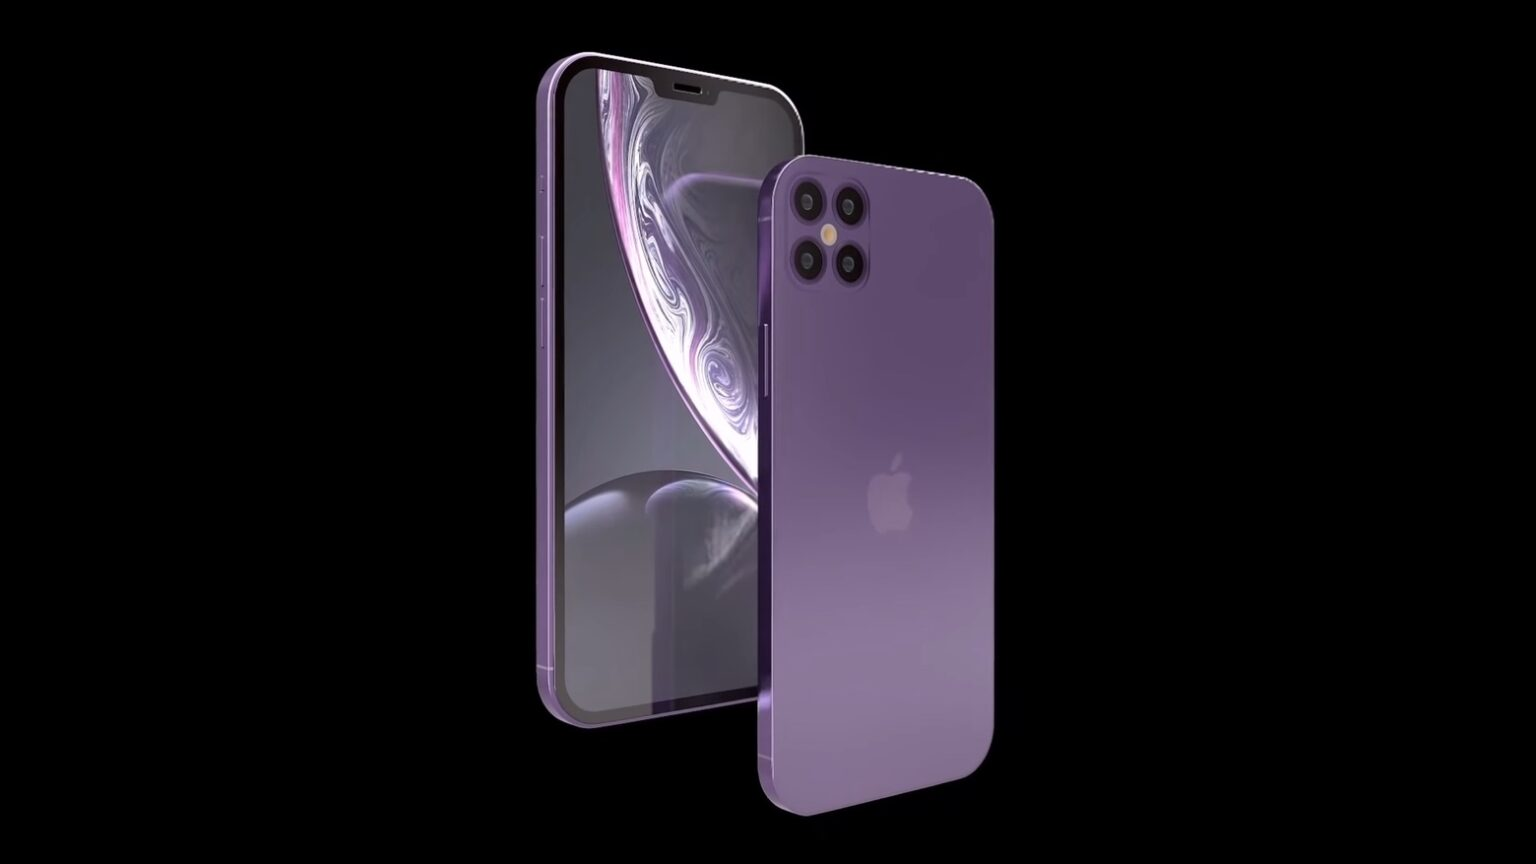 AN iPhone concept includes a smaller notch and a 120 Hz display.